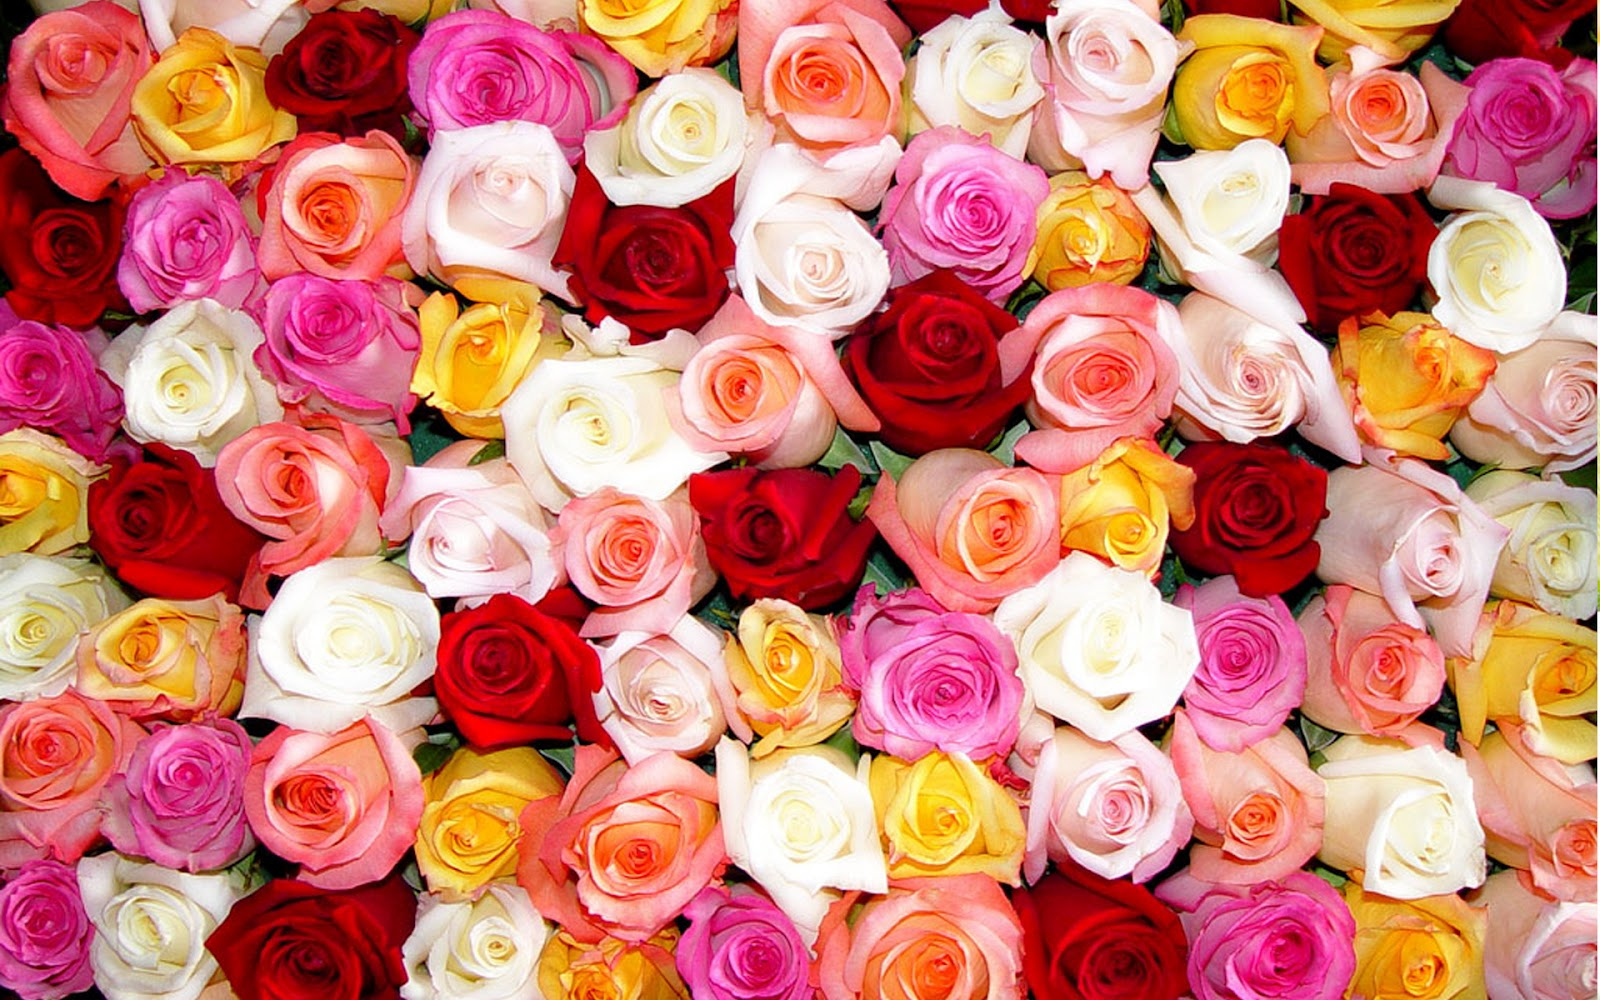 Roses And Flowers Desktop Wallpaper